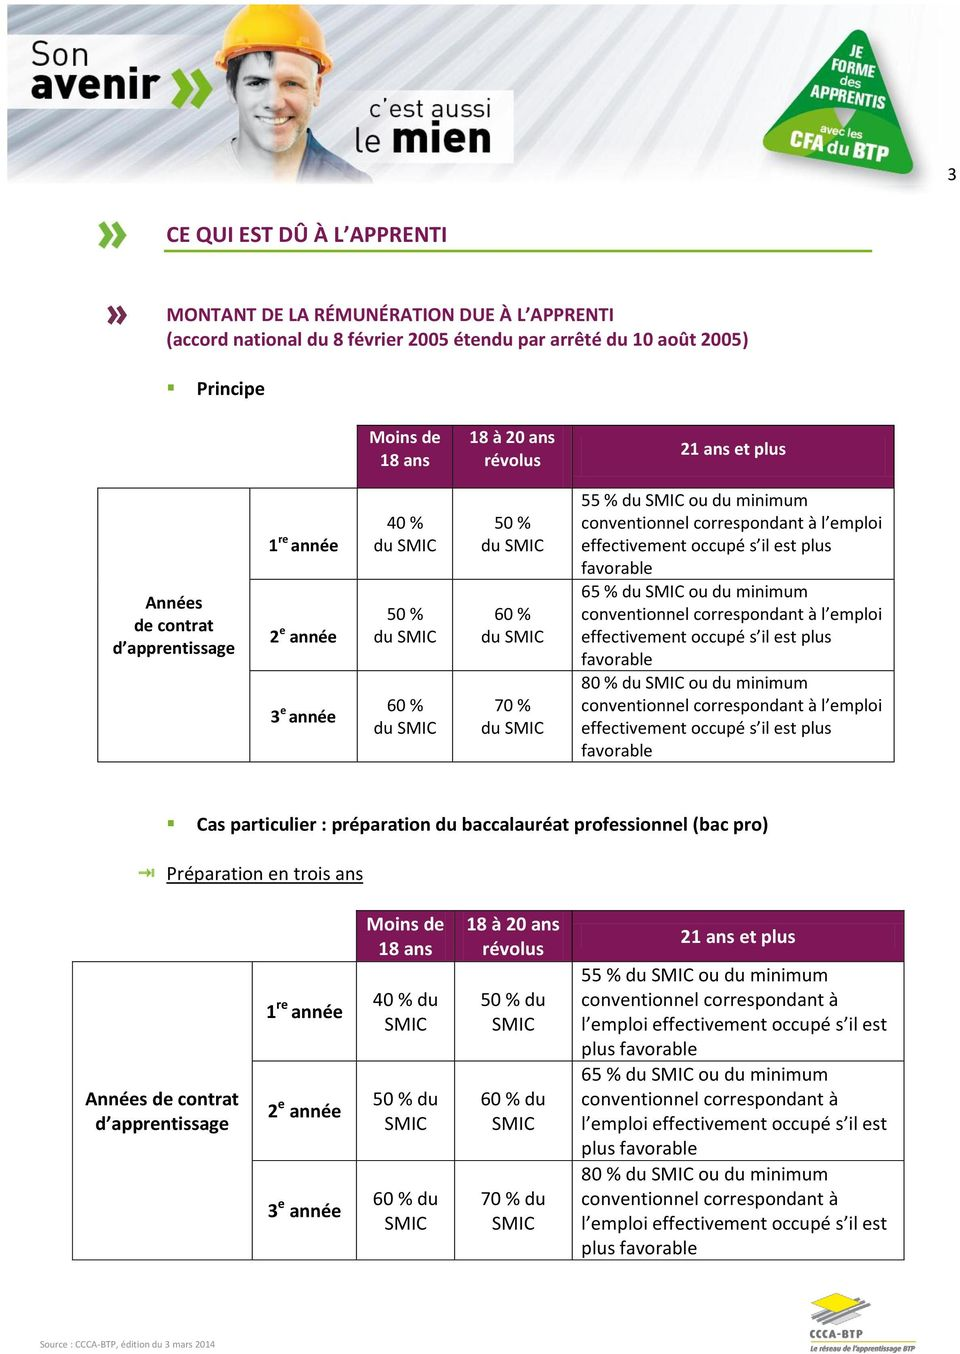 s il est plus favorable 65 % du ou du minimum conventionnel correspondant à l emploi effectivement occupé s il est plus favorable 80 % du ou du minimum conventionnel correspondant à l emploi